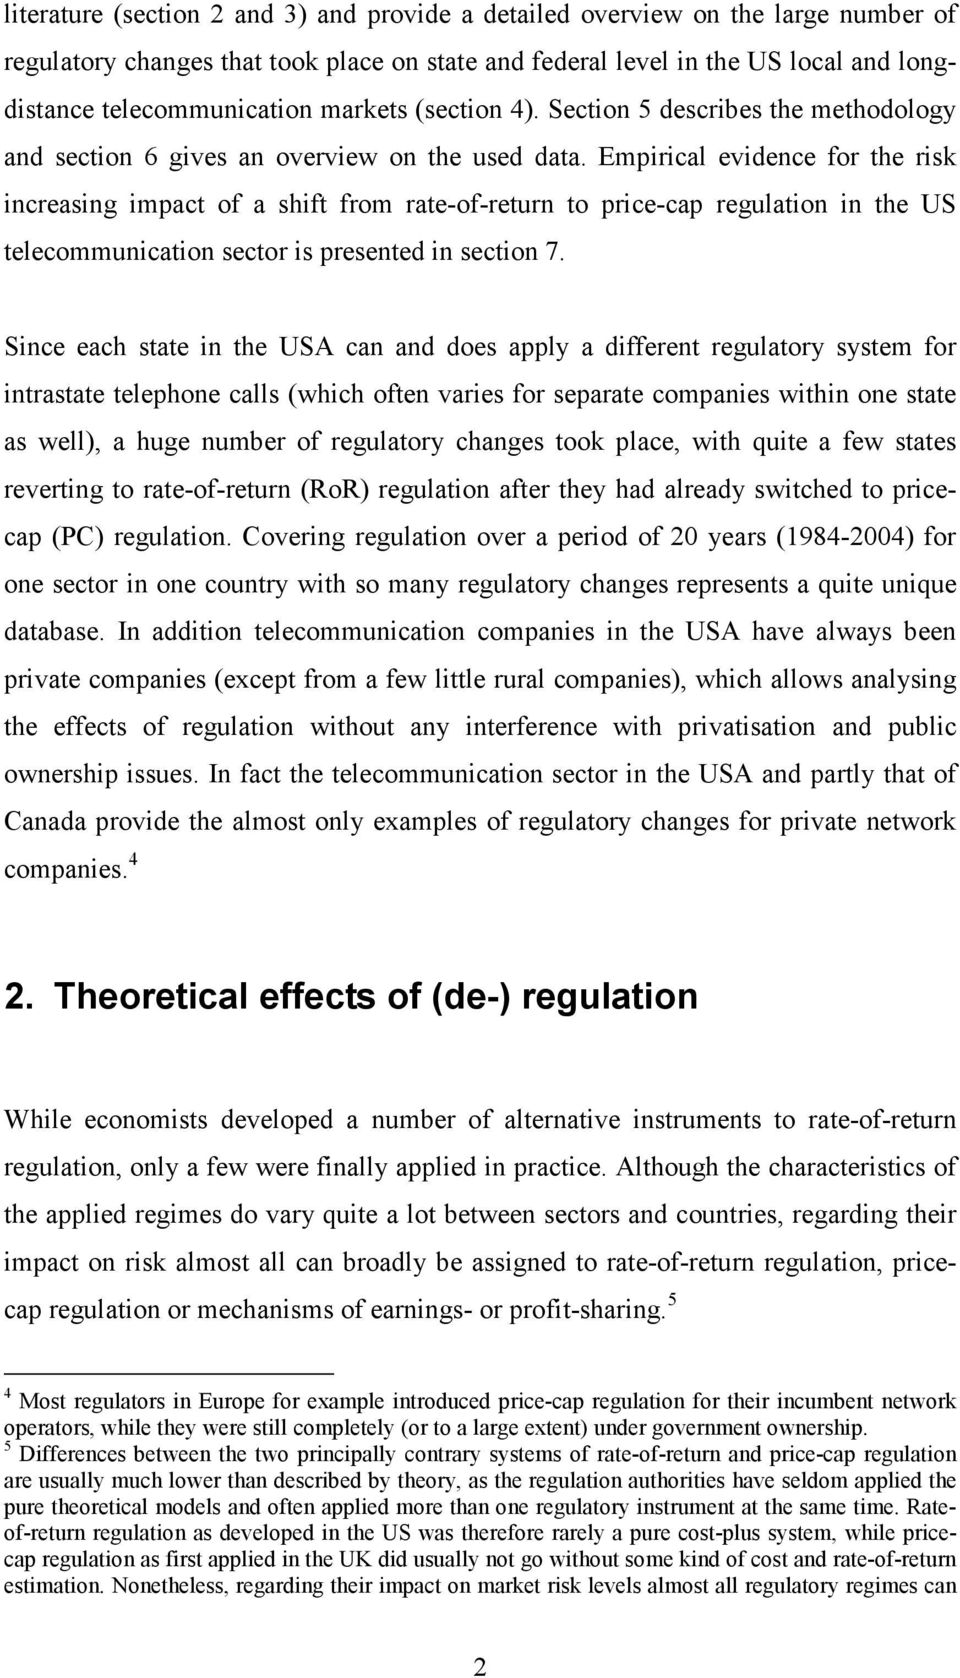 Empirical evidence for the risk increasing impact of a shift from rate-of-return to price-cap regulation in the US telecommunication sector is presented in section 7.